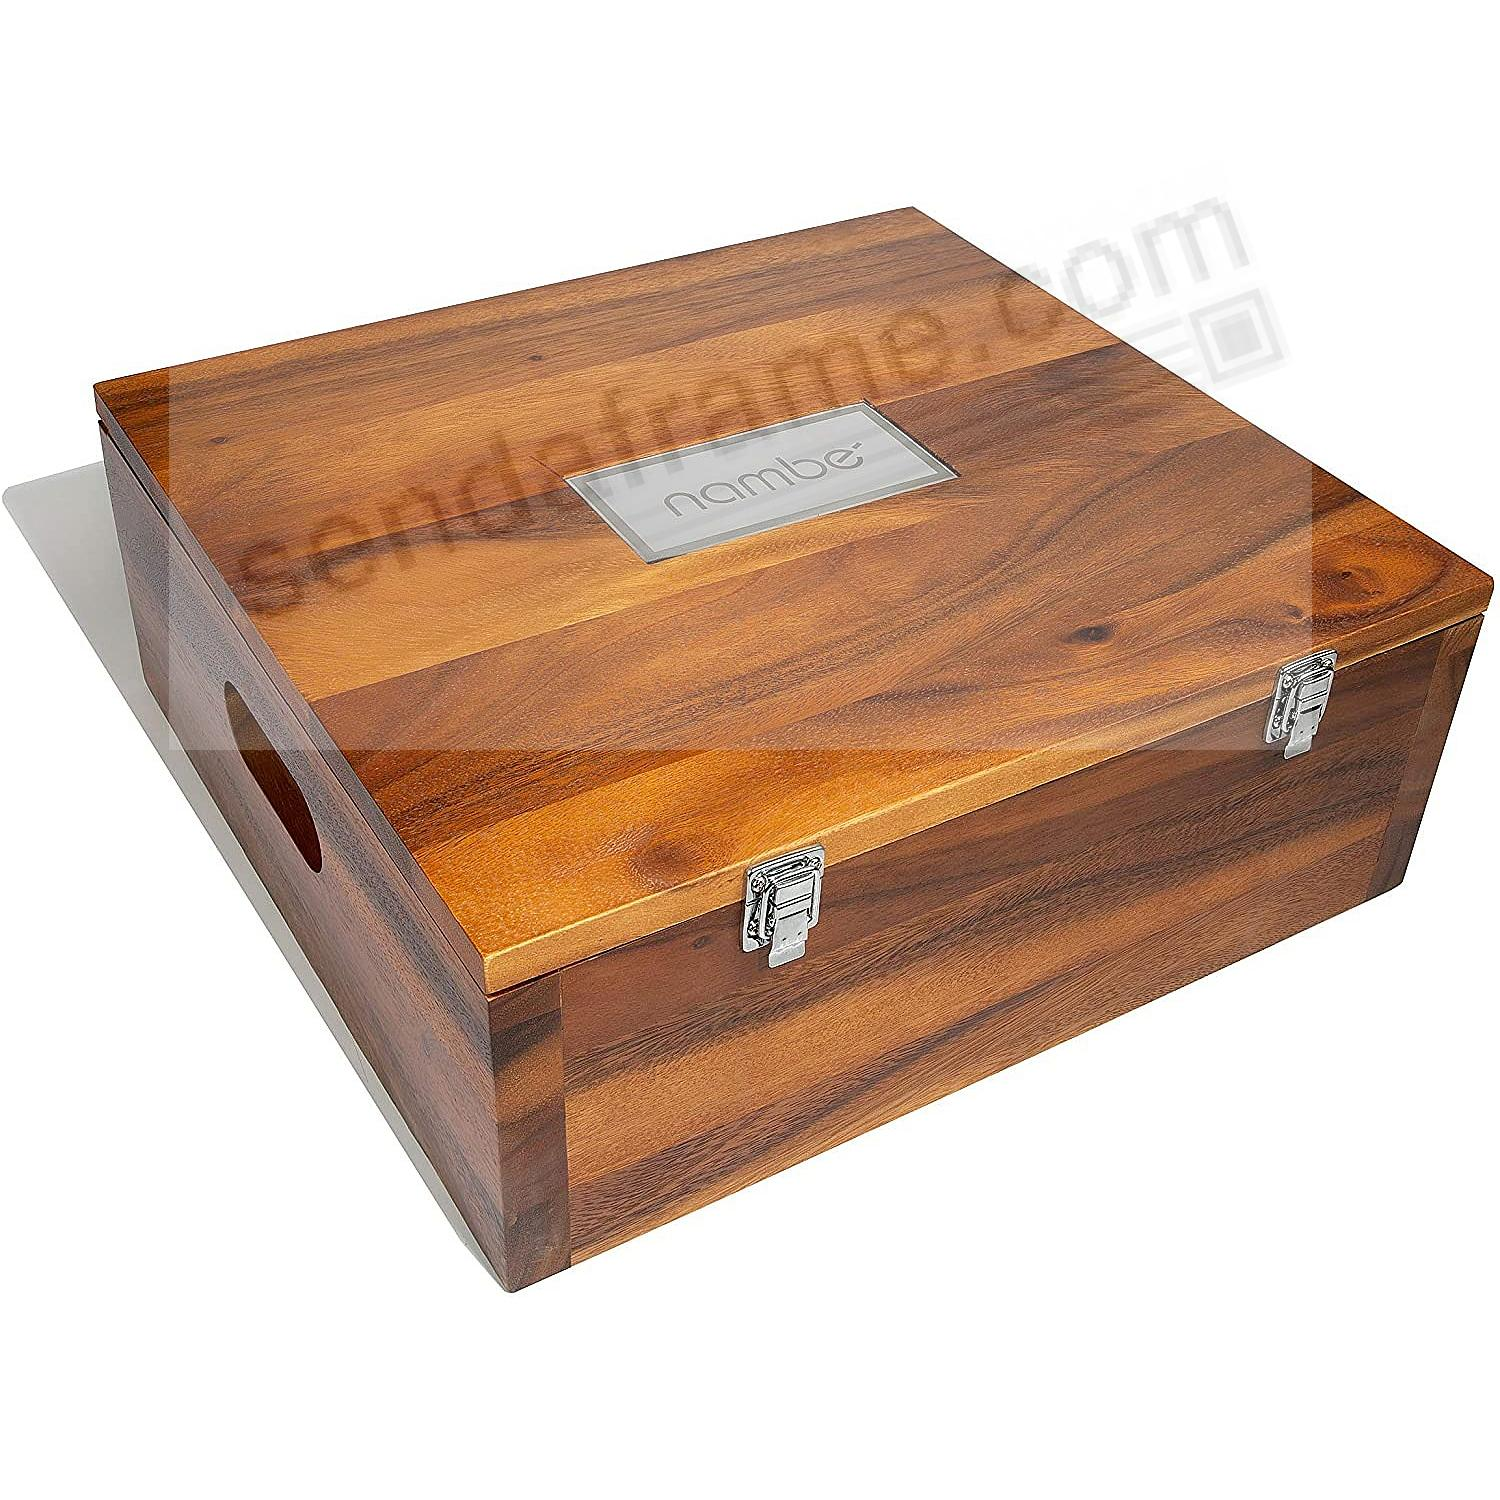 Miniature NATIVITY STORAGE BOX crafted by Nambe®